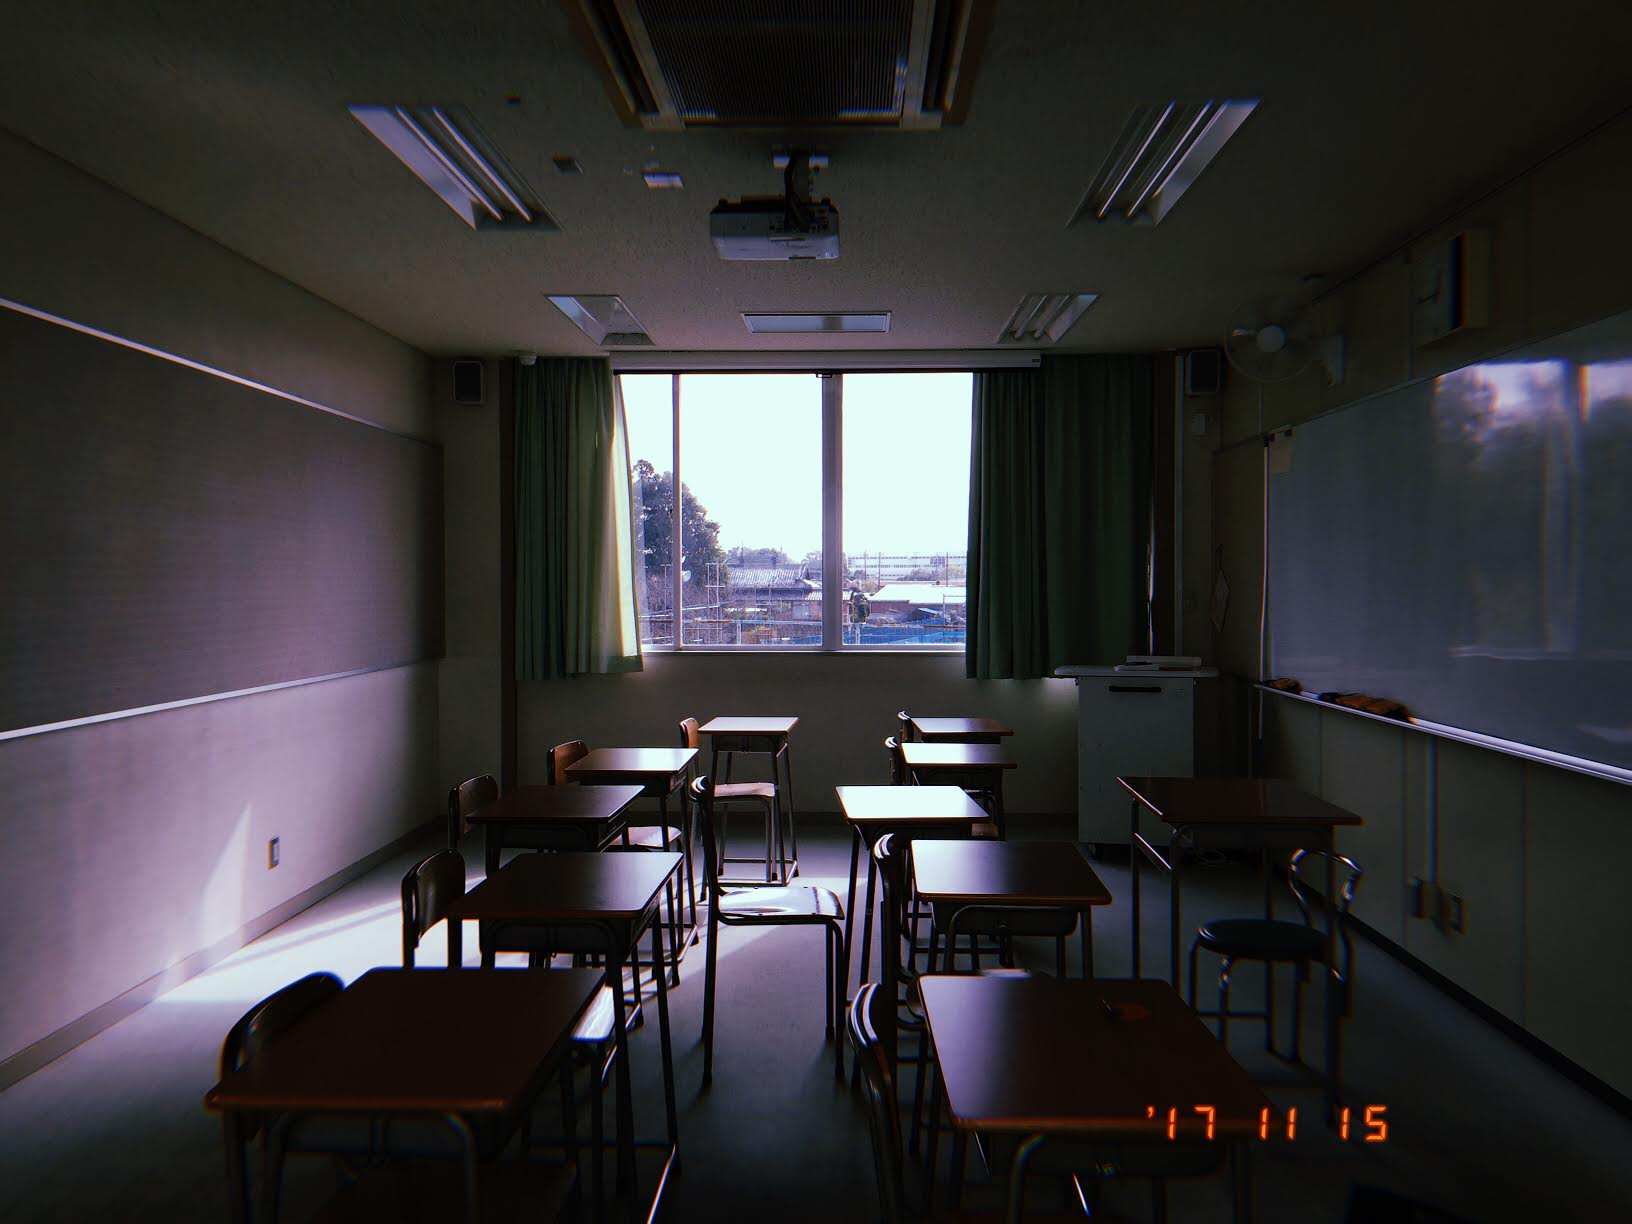 One of the smaller classrooms I teach in.